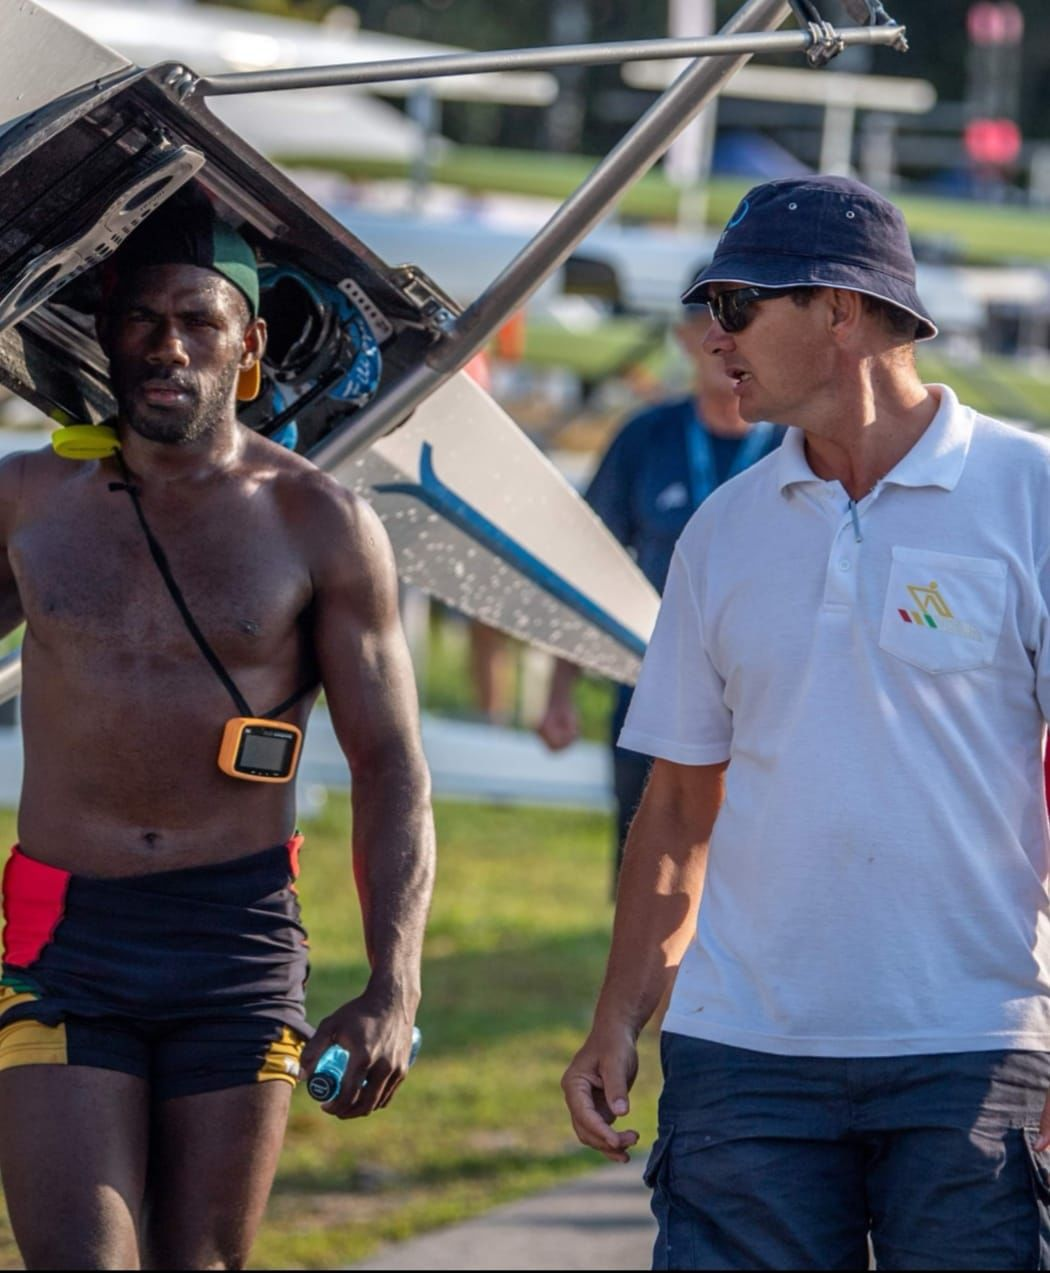 Olympic dream re-set. Rillio RII is back on the water : head coach Andrew MacKenzie